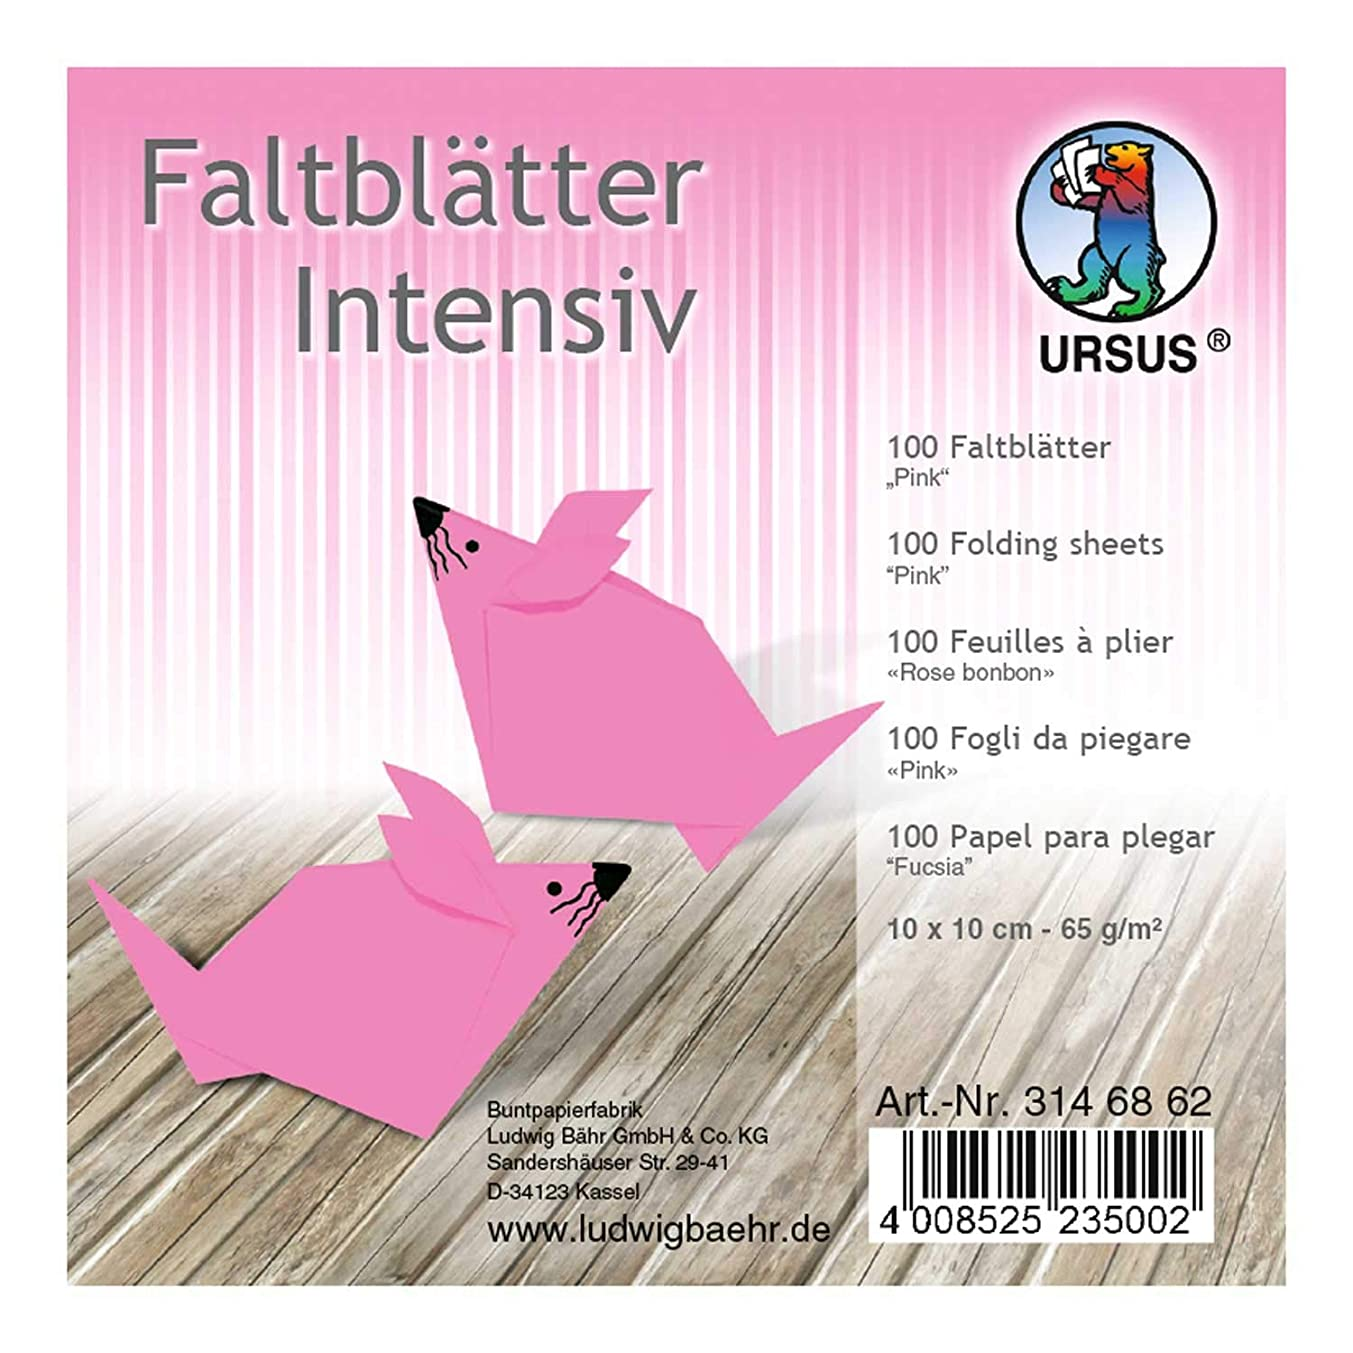 Ursus 3146862 Folding Sheets Plain 100 Sheets 65 g/m2 10 x 10 cm for Small and Large Origami Artists Coloured Intense Colours Pink